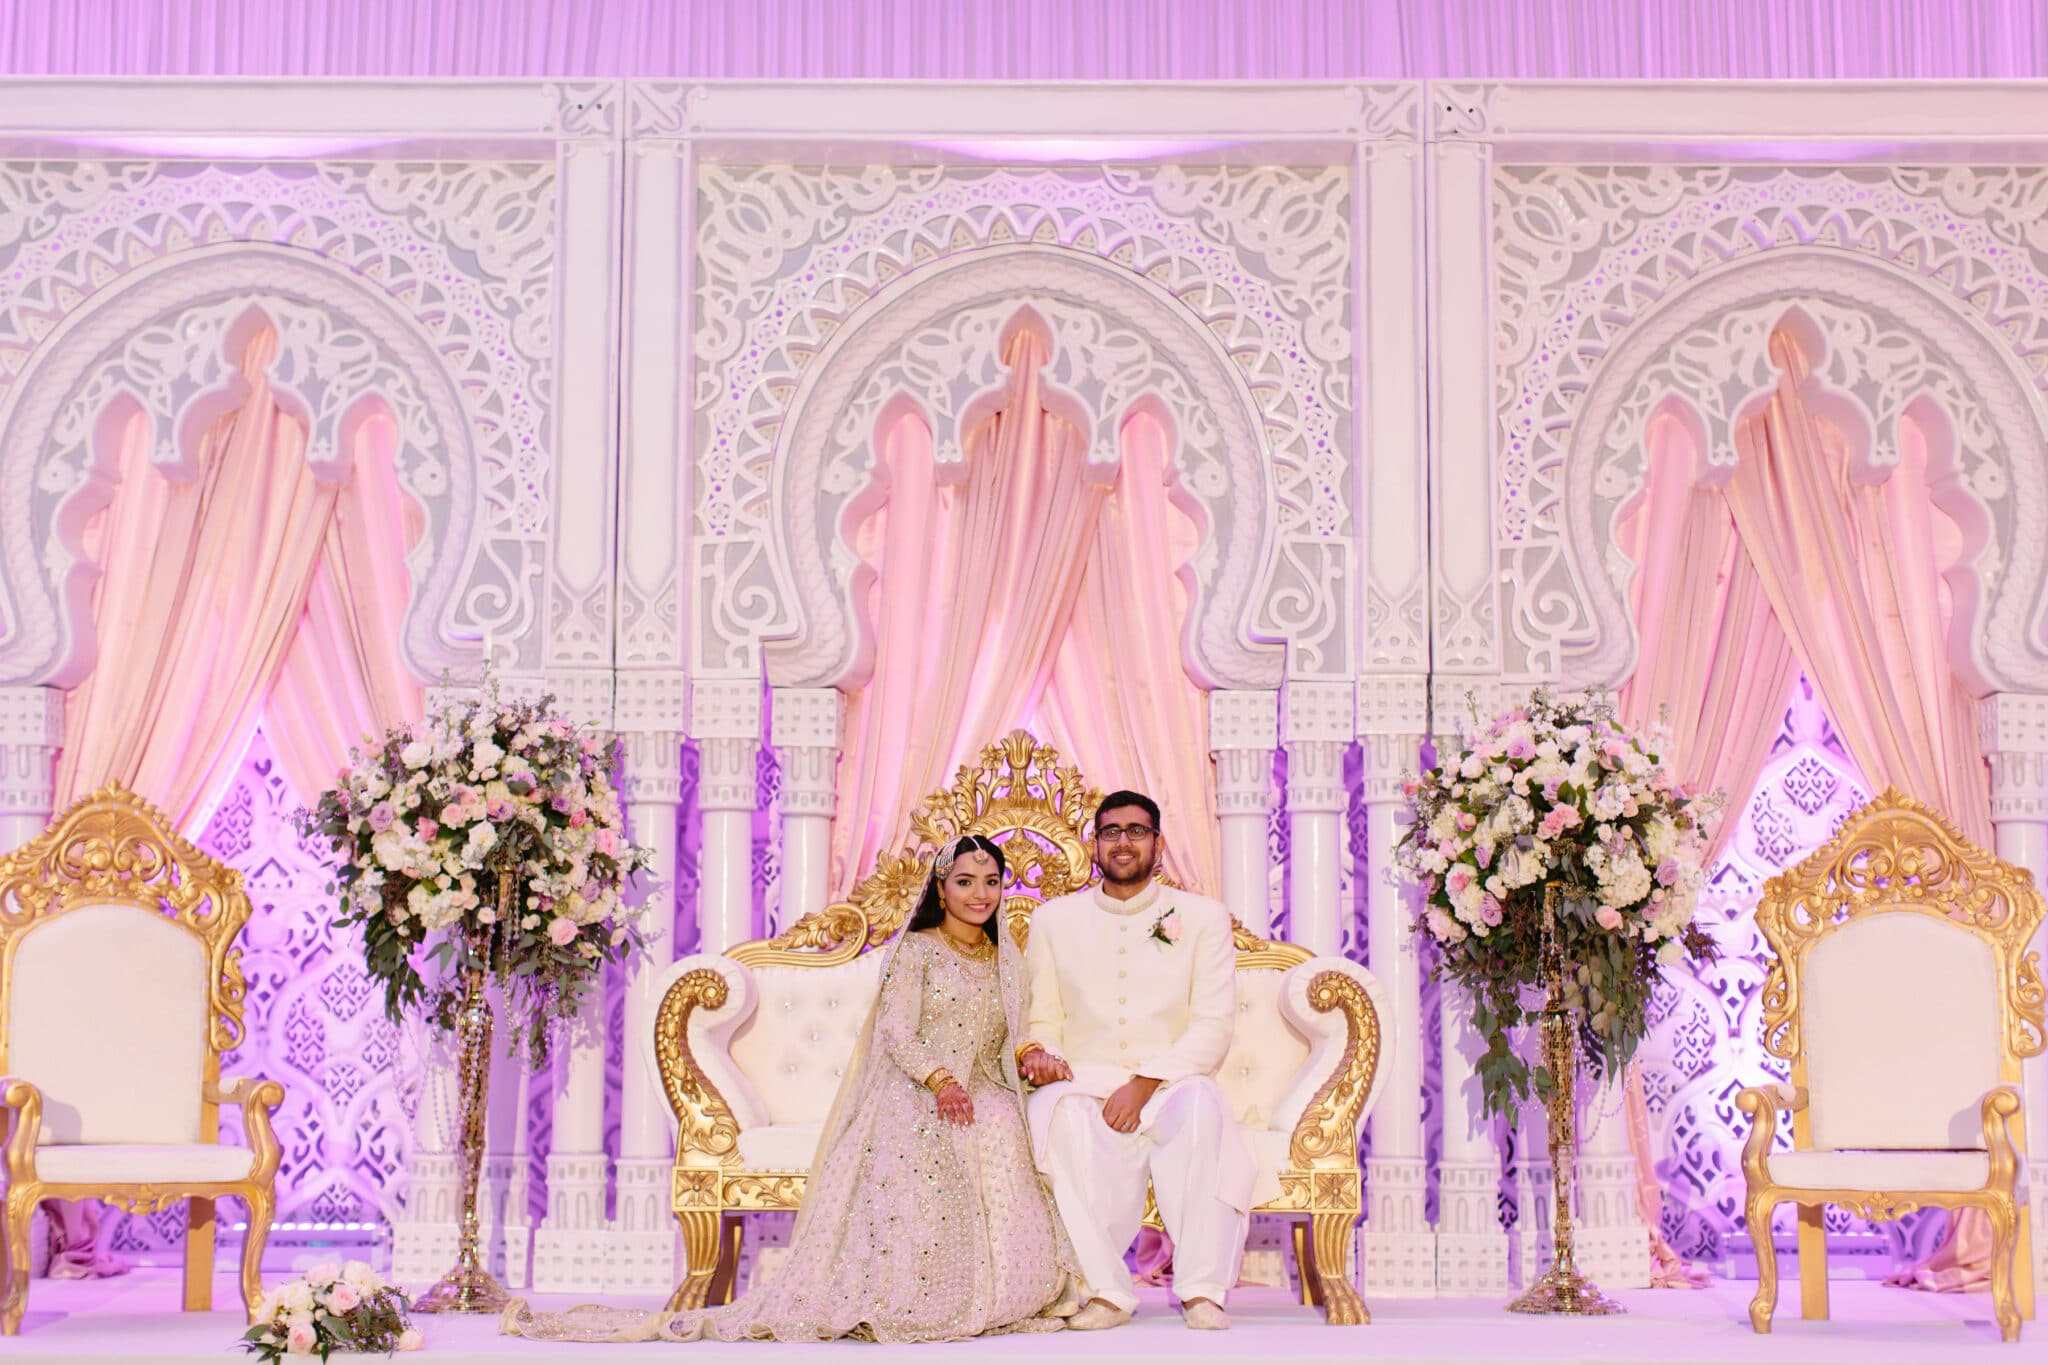 bride and groom with decorative background